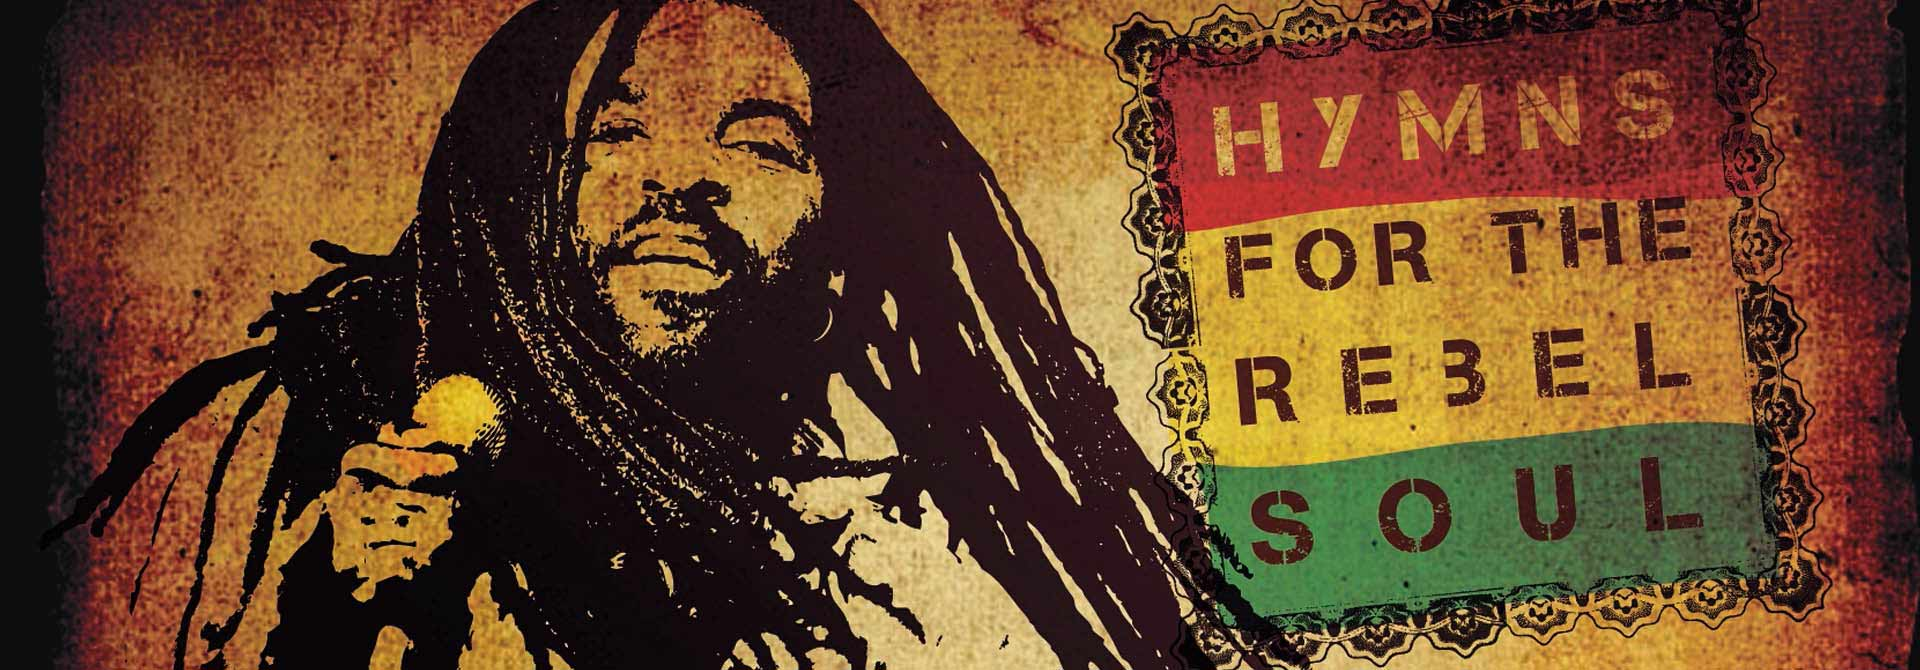 Afro Roots Rocky Dawuni